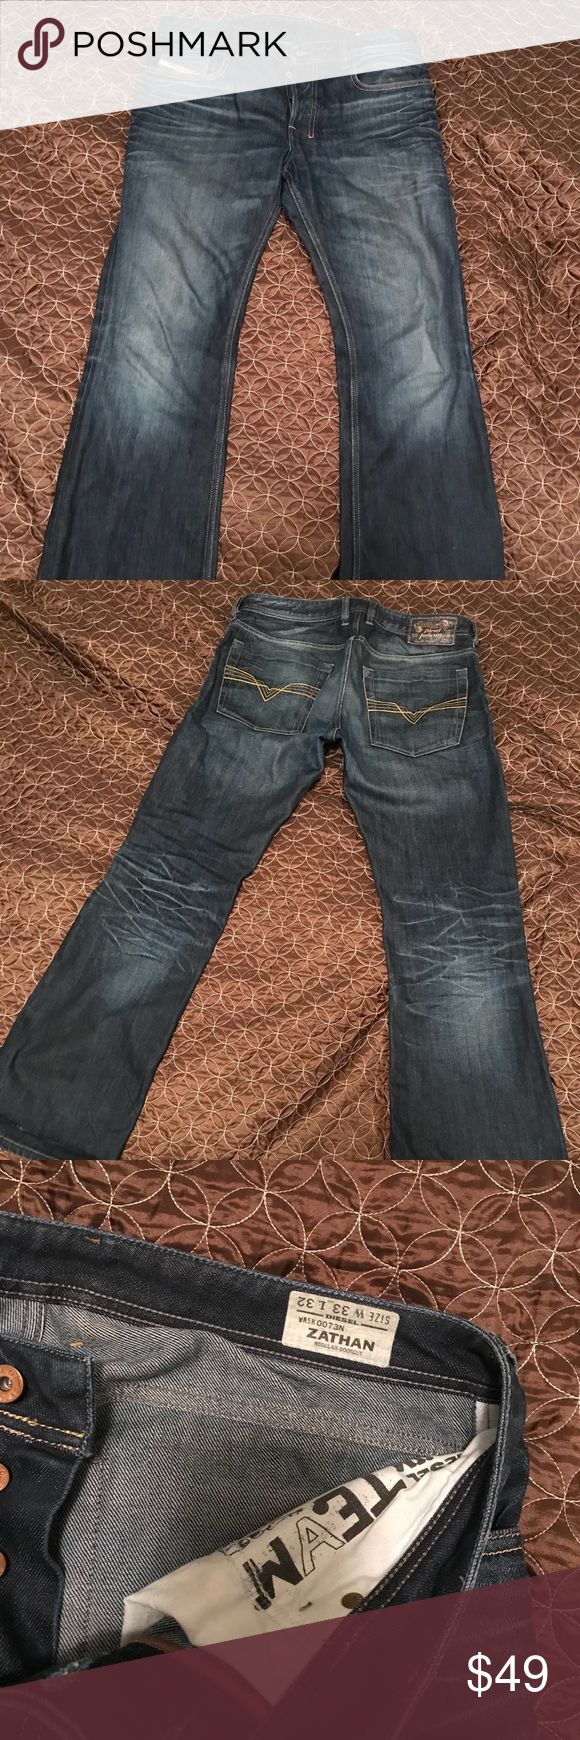 Diesel Zathan men's jeans Great condition Mens Diesel Zathan Jeans. W 33, L 32. There is a line on the bottom where it was folded, unnoticeable when you wear it. Other than that no signs of wear. Diesel Jeans Straight